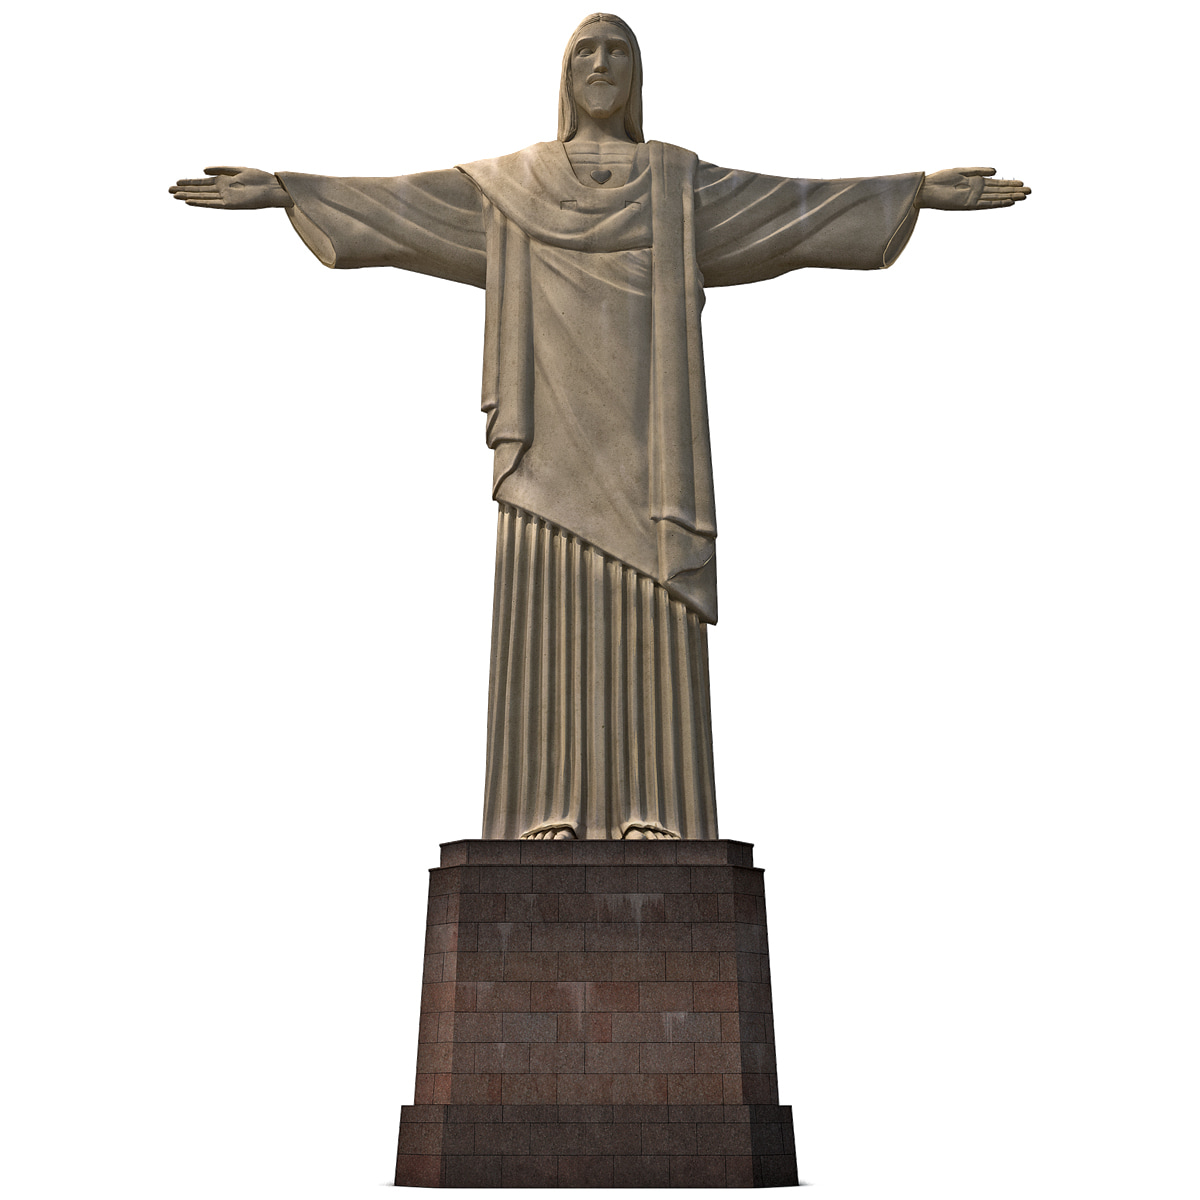 3dsmax cristo redentor low-poly